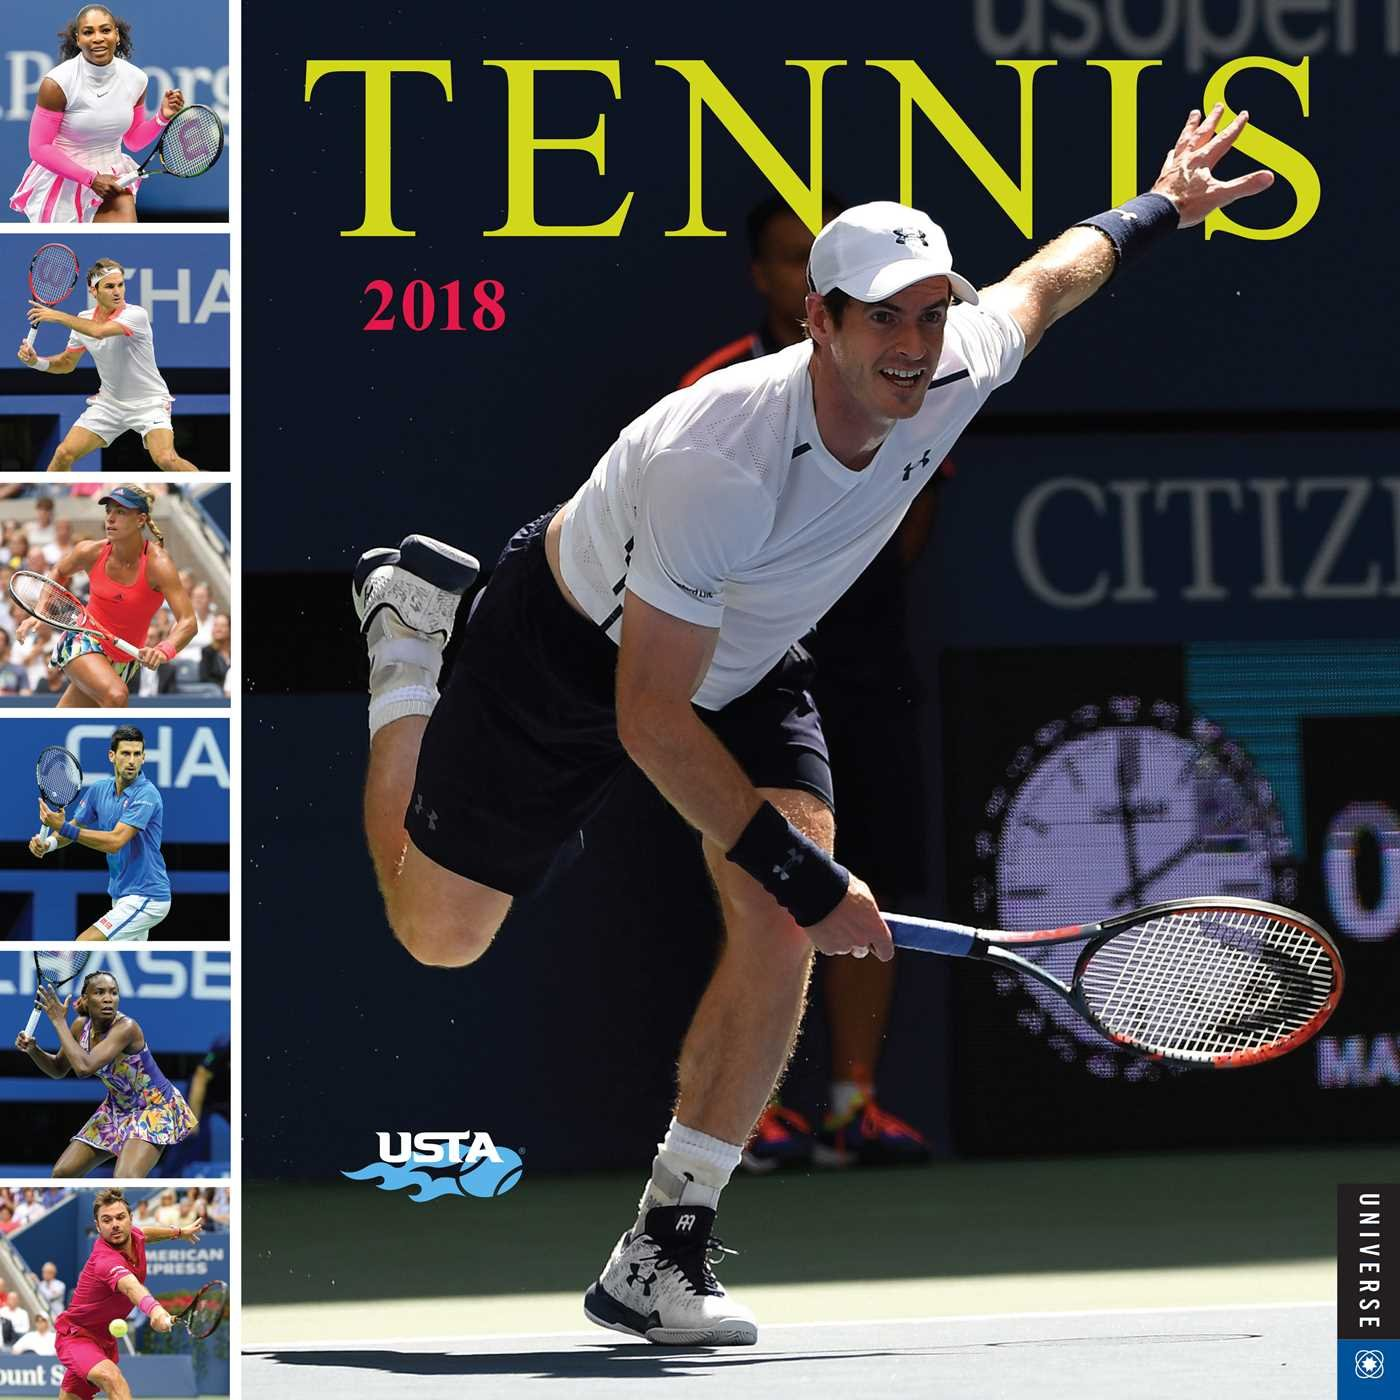 Tennis The U.S. Open 2018 Wall Calendar: The Official Calendar of the United States Tennis Association by Universe Publishing